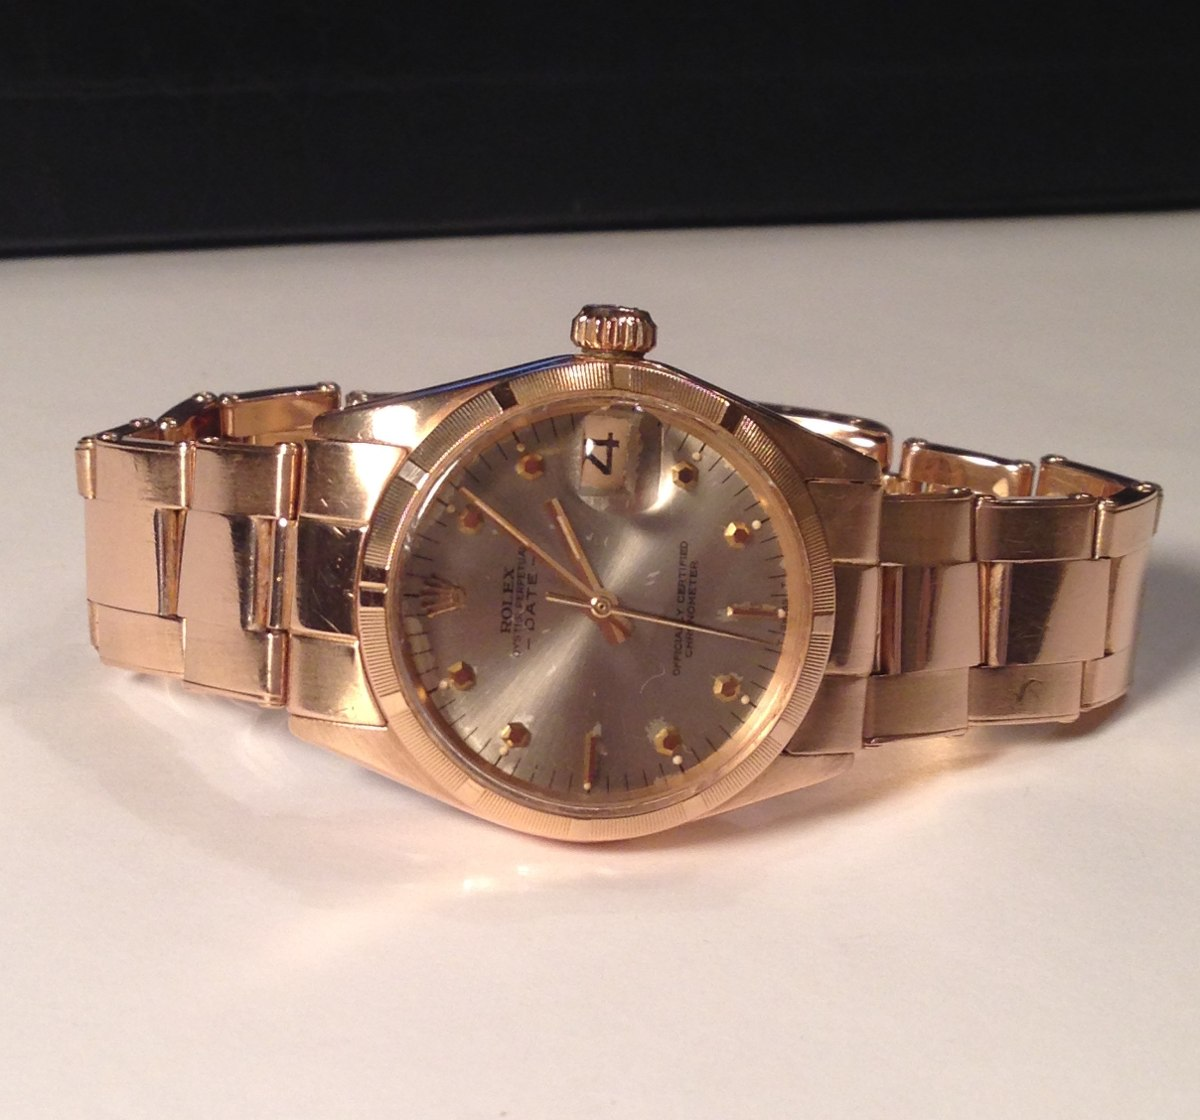 7f45b8f52d7 rolex dayjust ouro 18k automatic 80 gramas  31 mm . Carregando zoom.